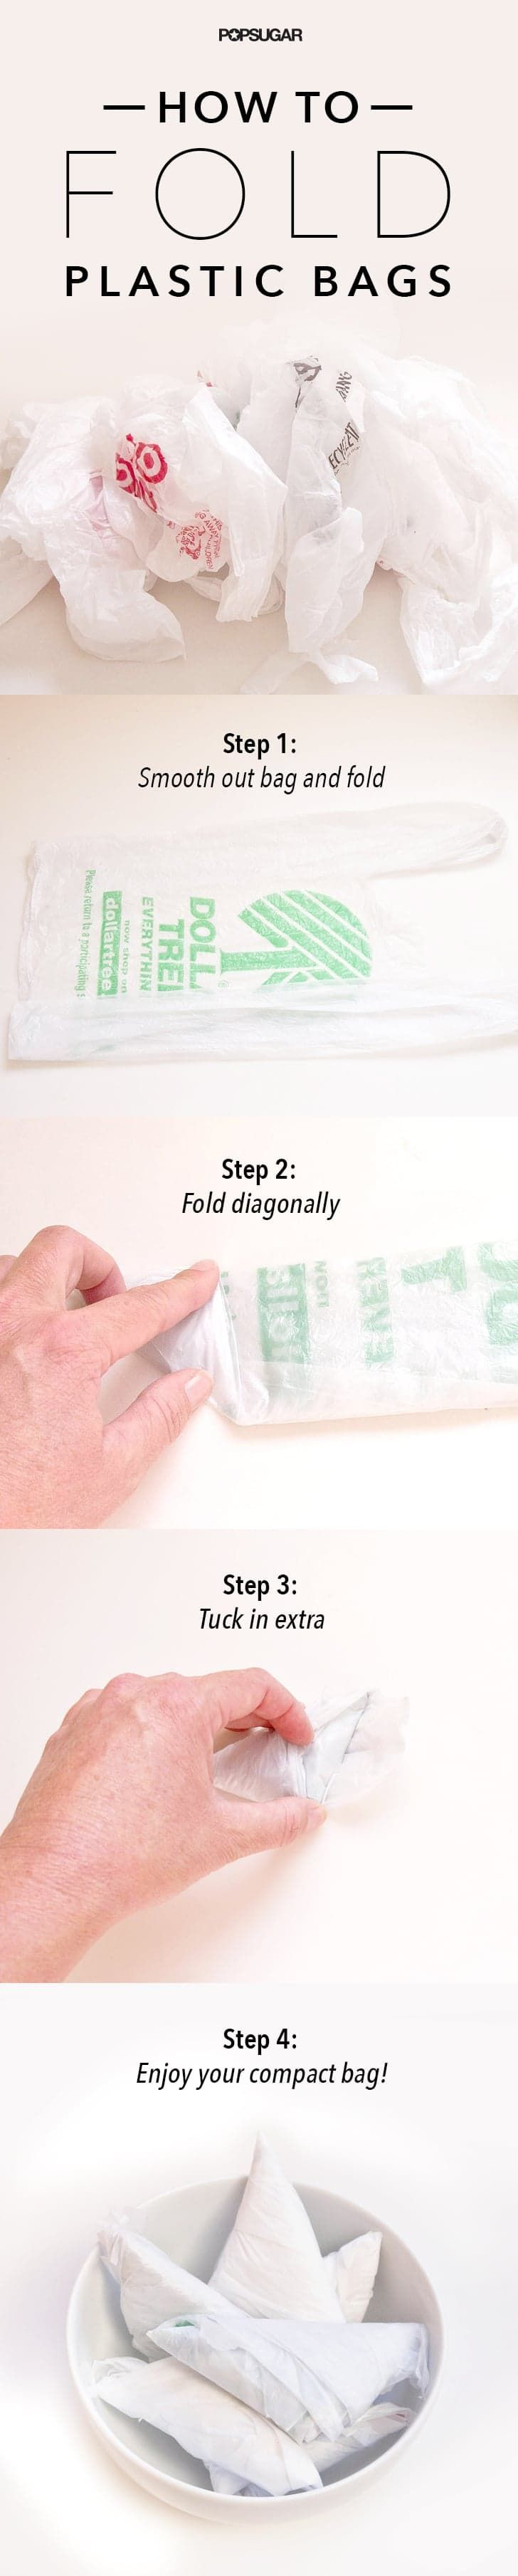 Get Organized and Fold Your Plastic Bags